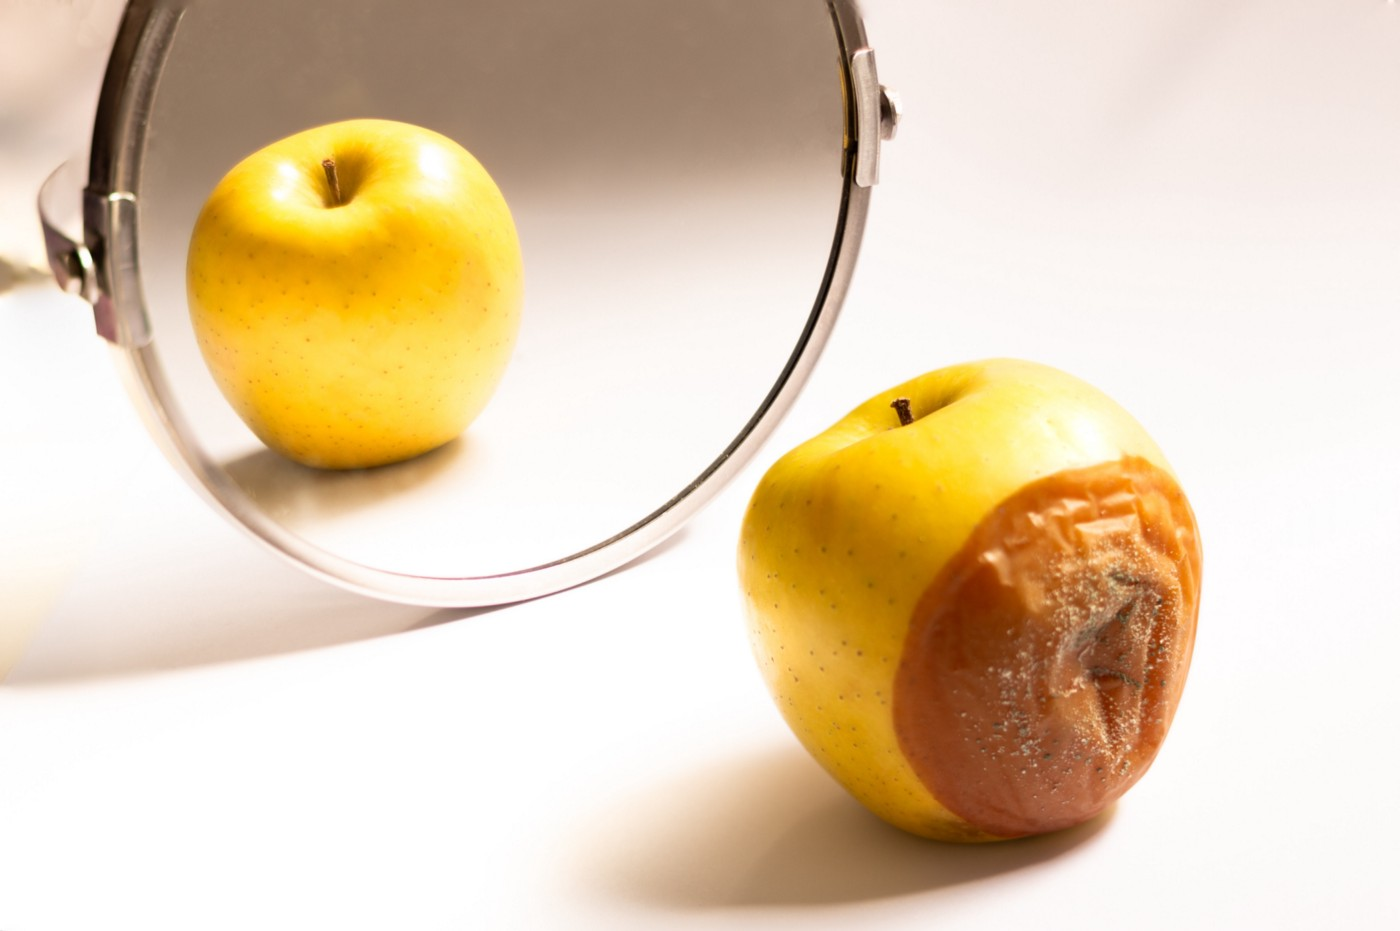 Apple that appears perfect in a mirror, because its rotten side faces away.